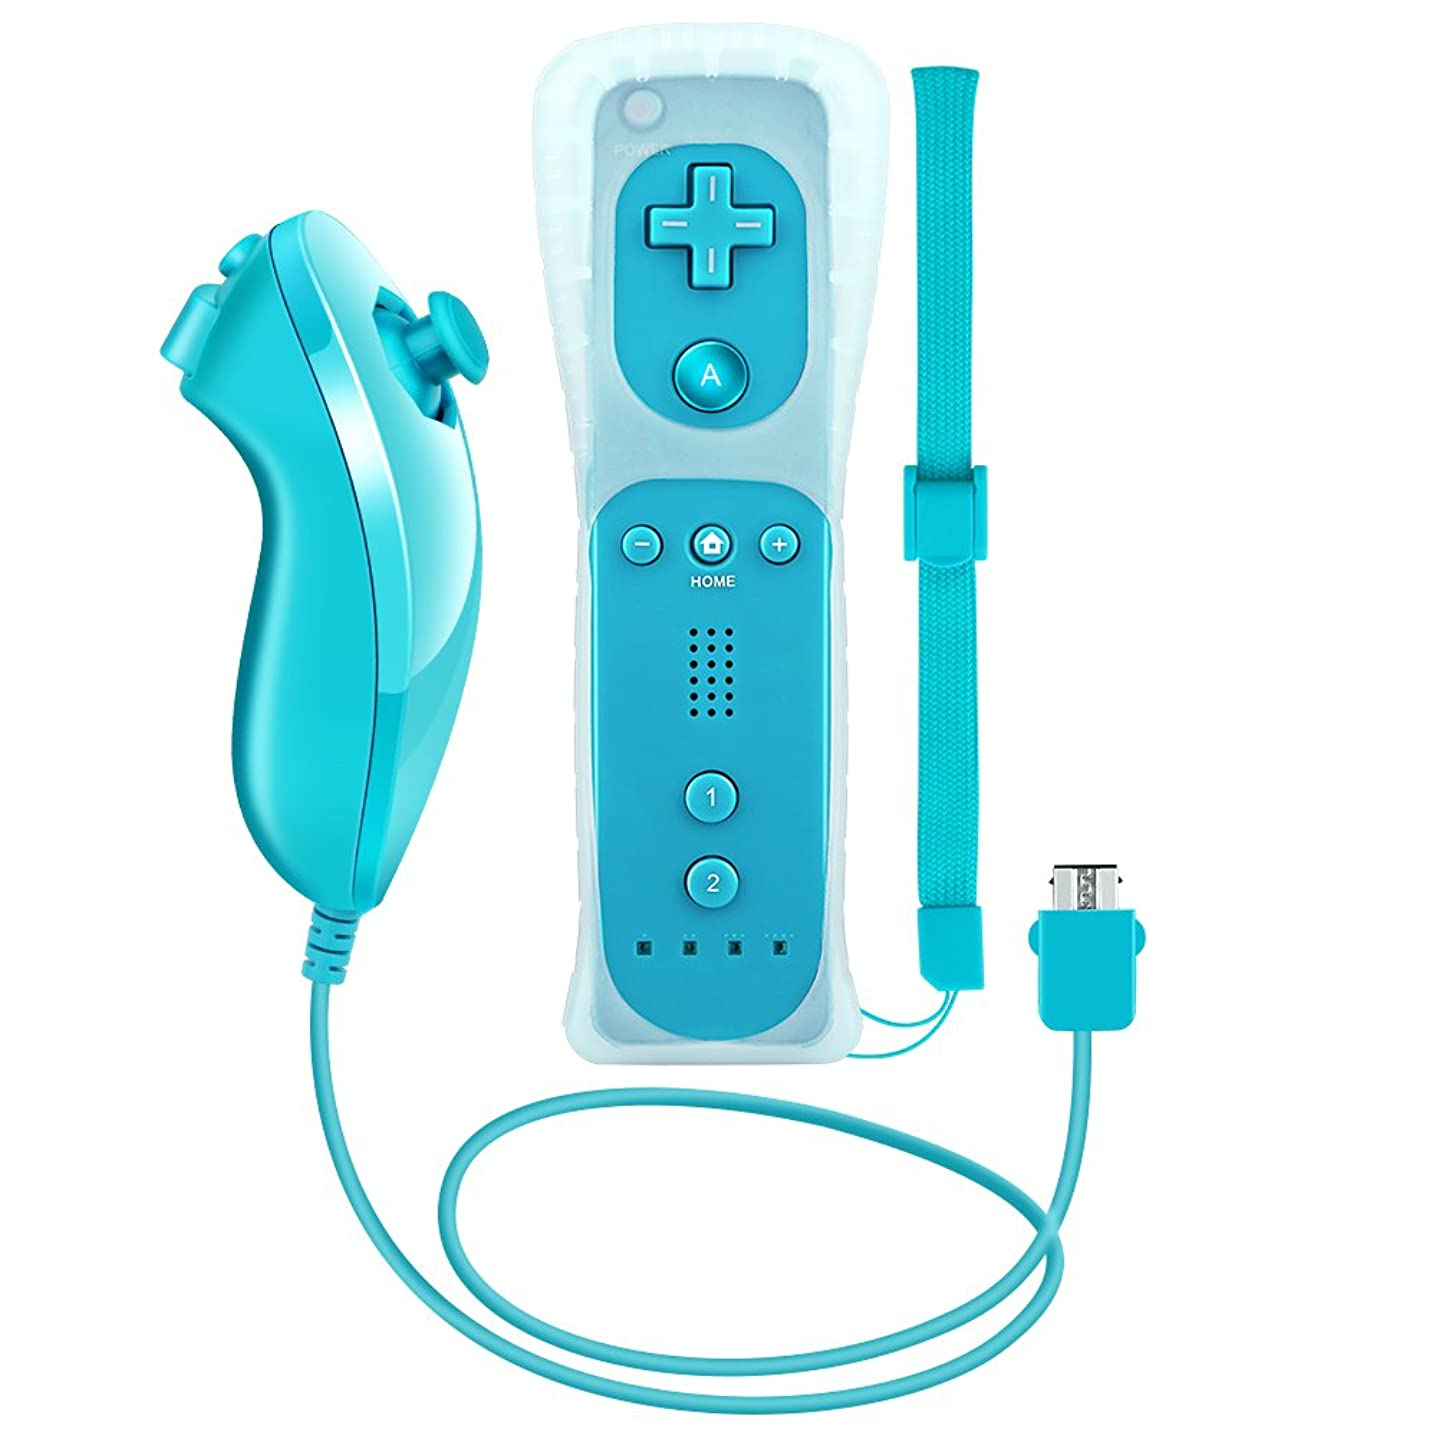 RC01 Wii Remote and Nunchuck Controller for Wii + Free Silicone case(Light Blue)